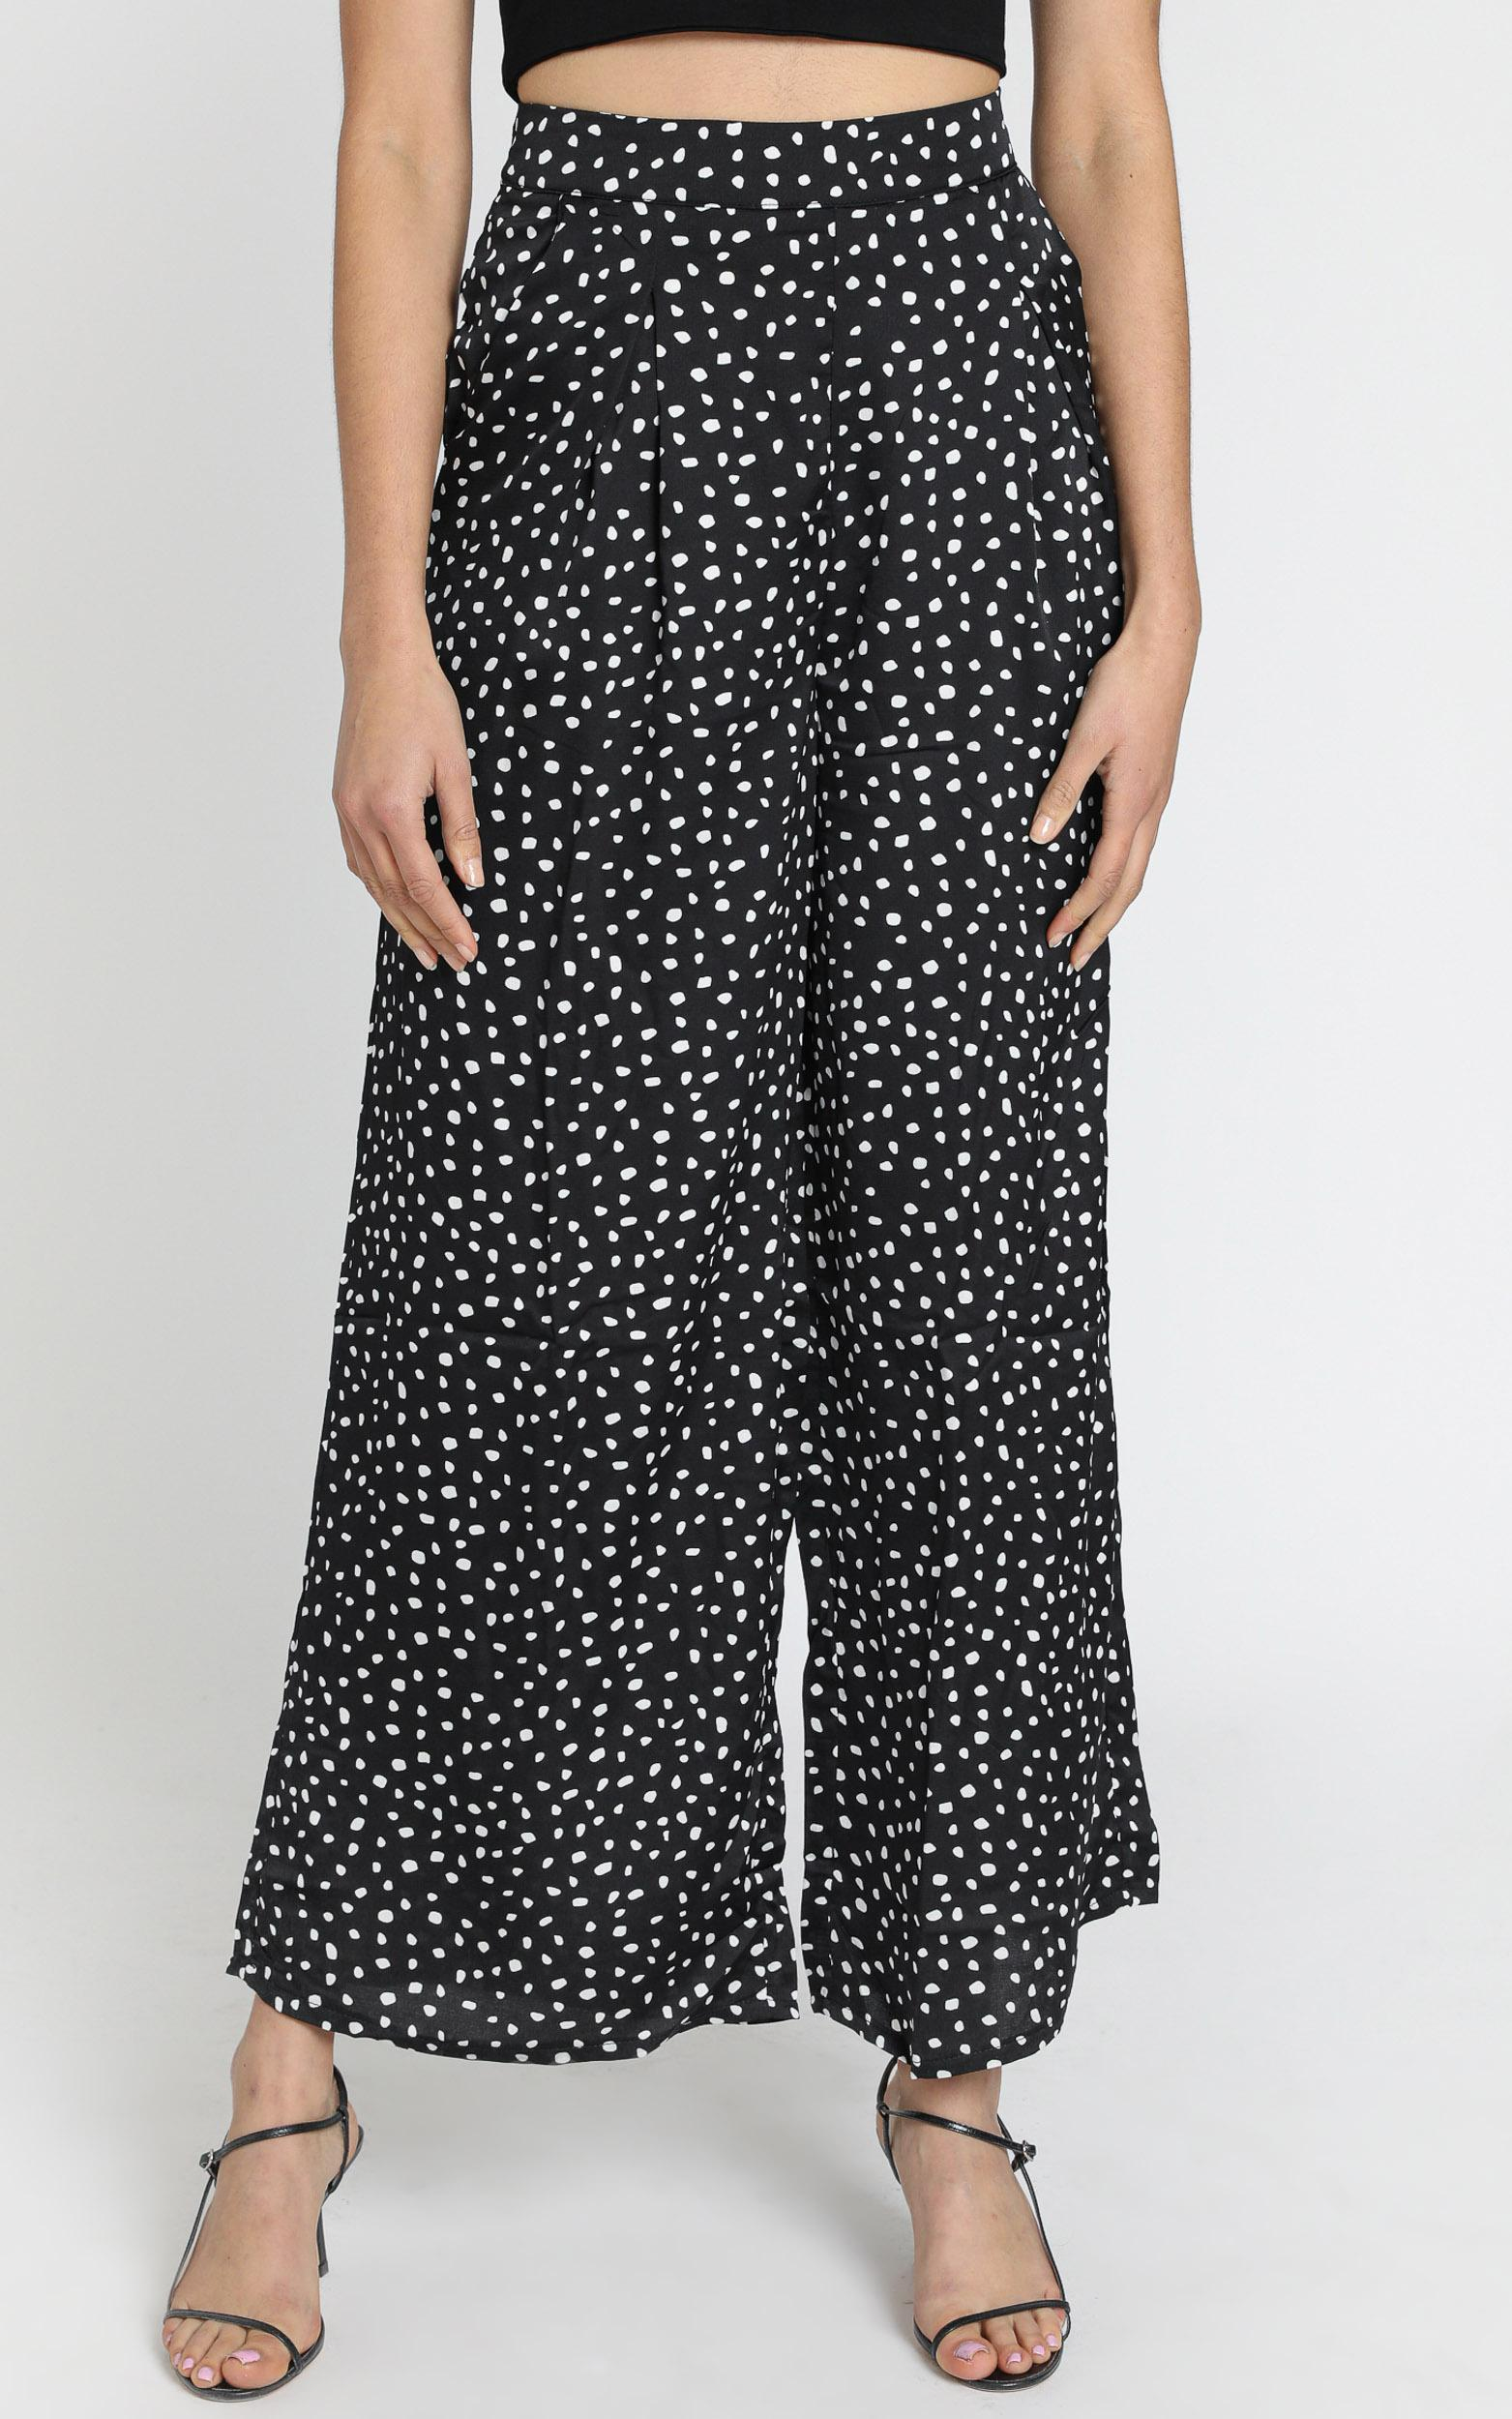 Bondi Babe Pants in Black Spot- 6 (XS), Black, hi-res image number null